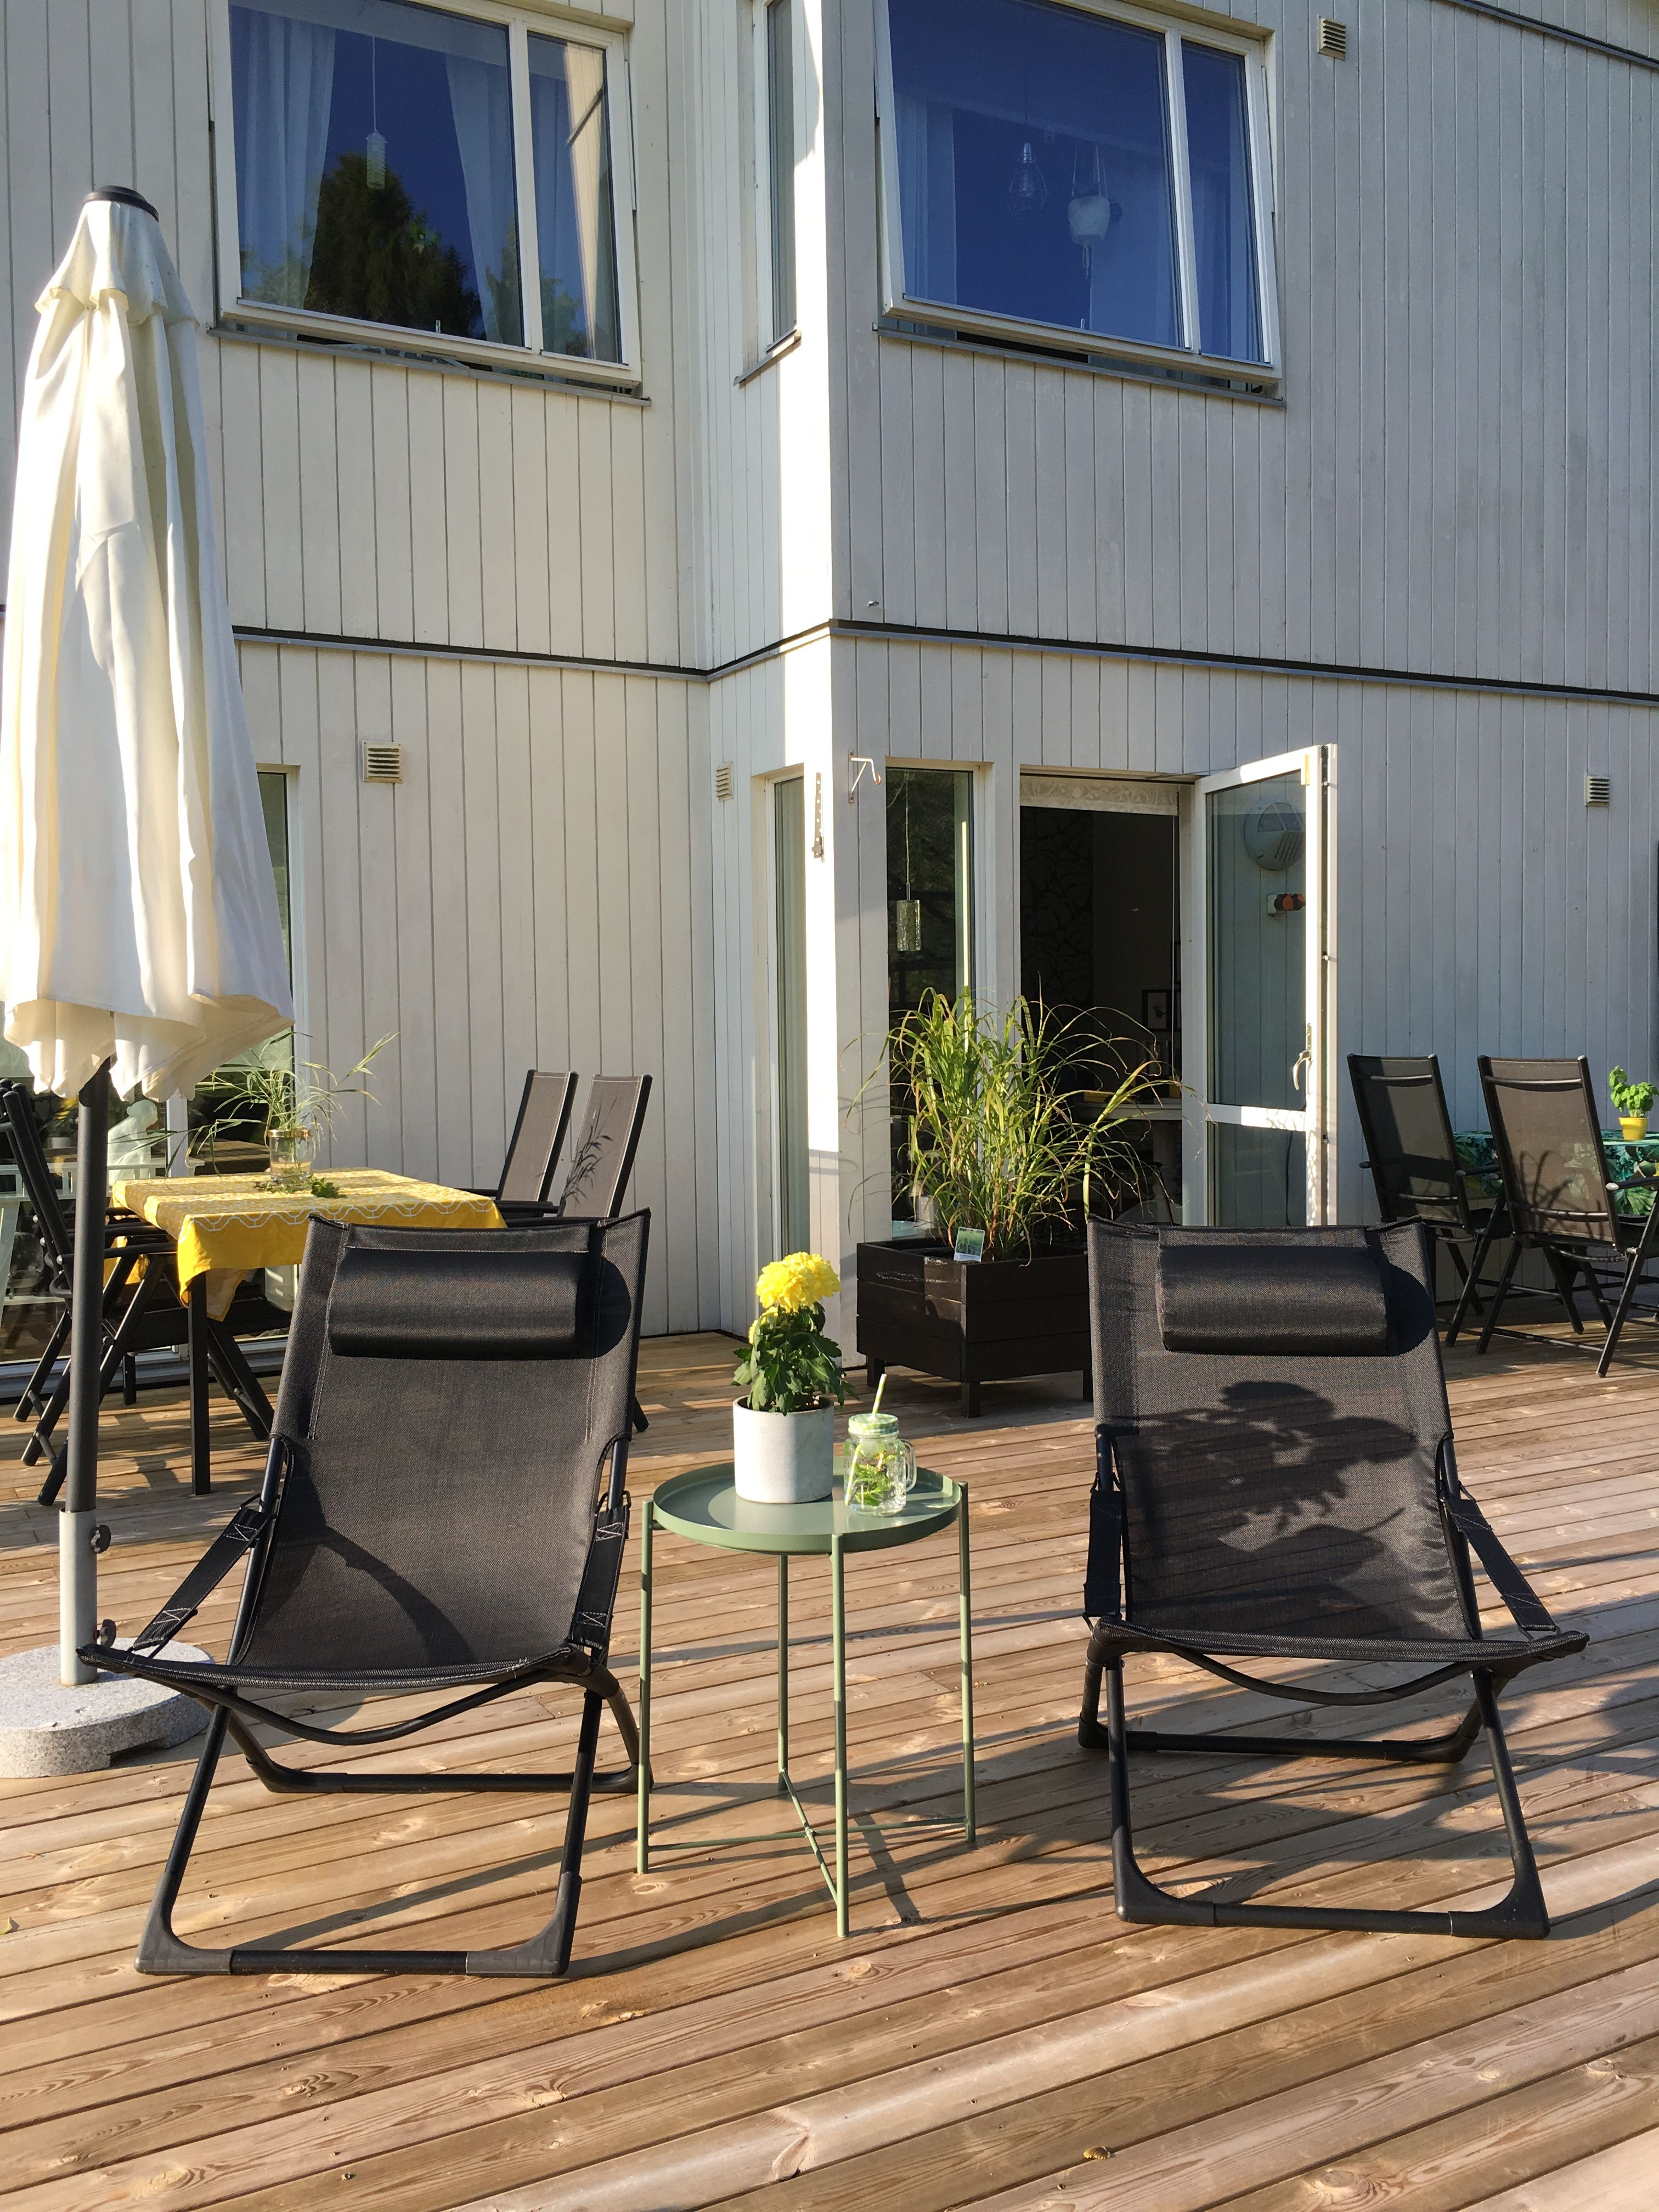 Our house with sundeck and green house outdoor kitchen and bar with